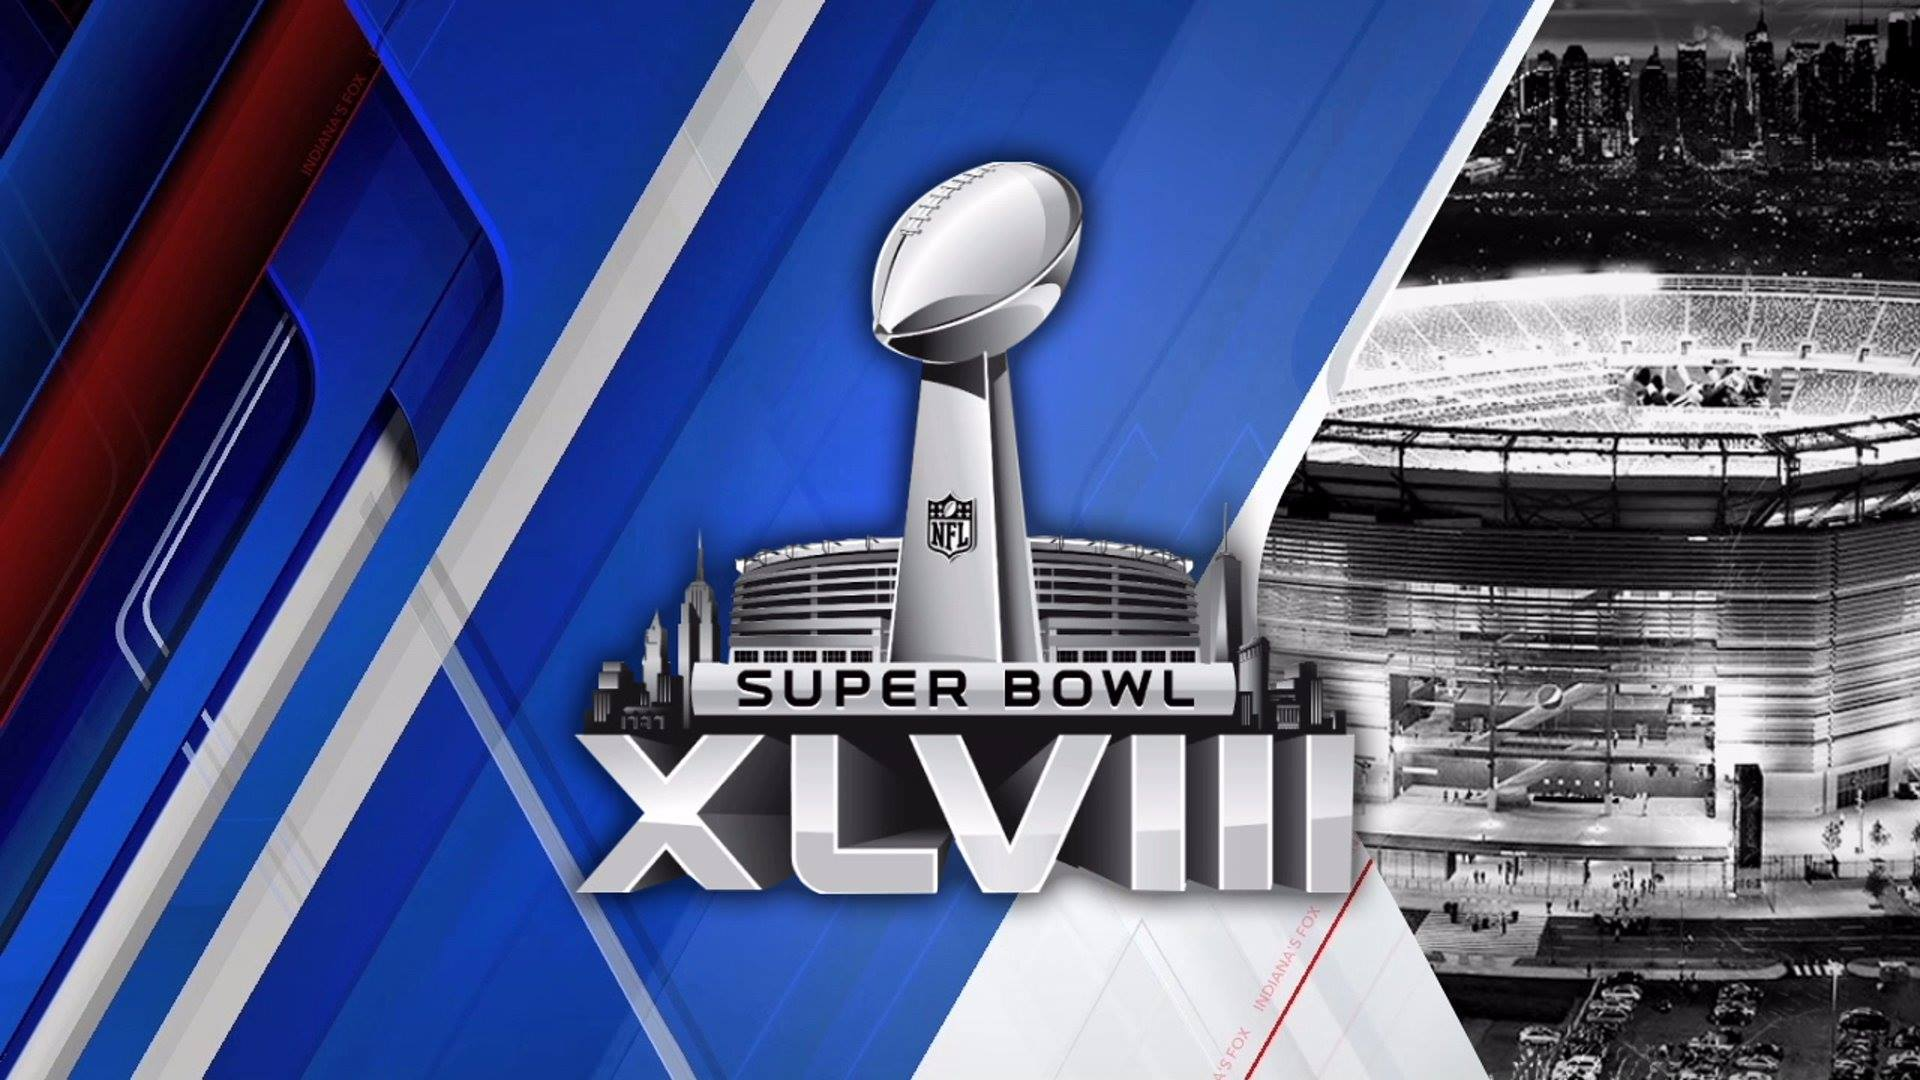 Super Bowl XLVIII Commercials Sets Another Unforgettable Tradition